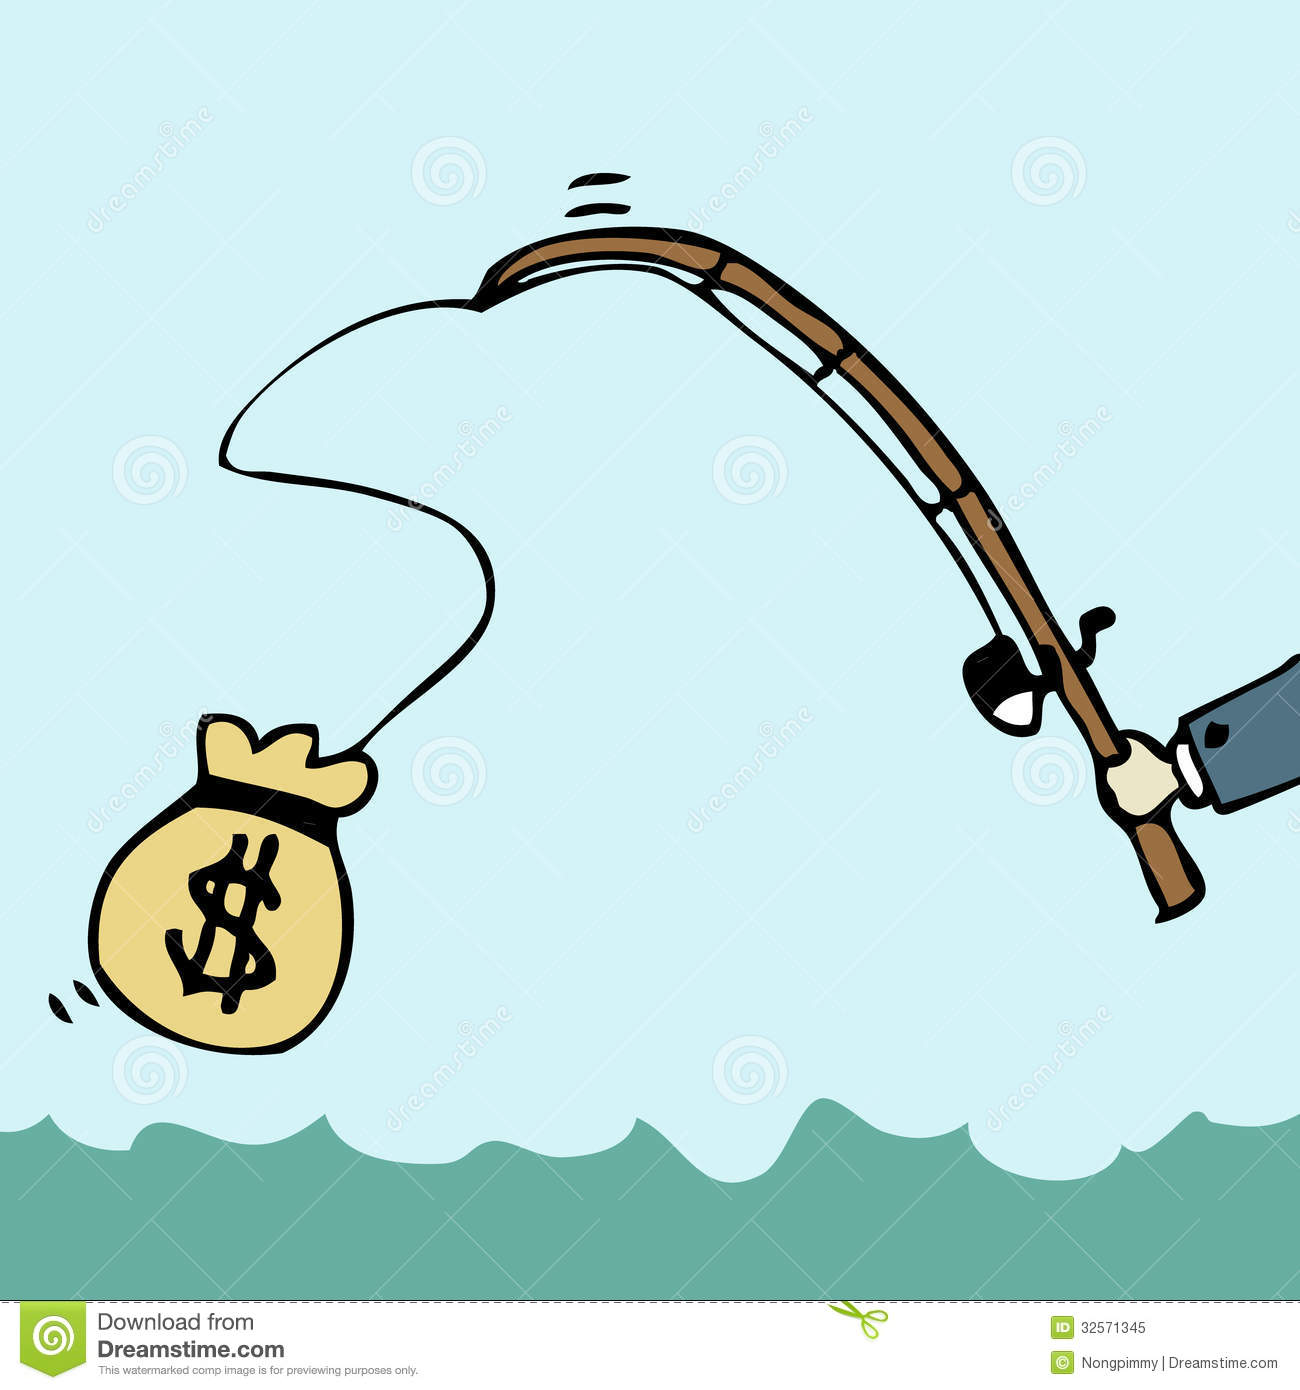 Fishing money royalty free stock photo image 32571345 for Fish for cash